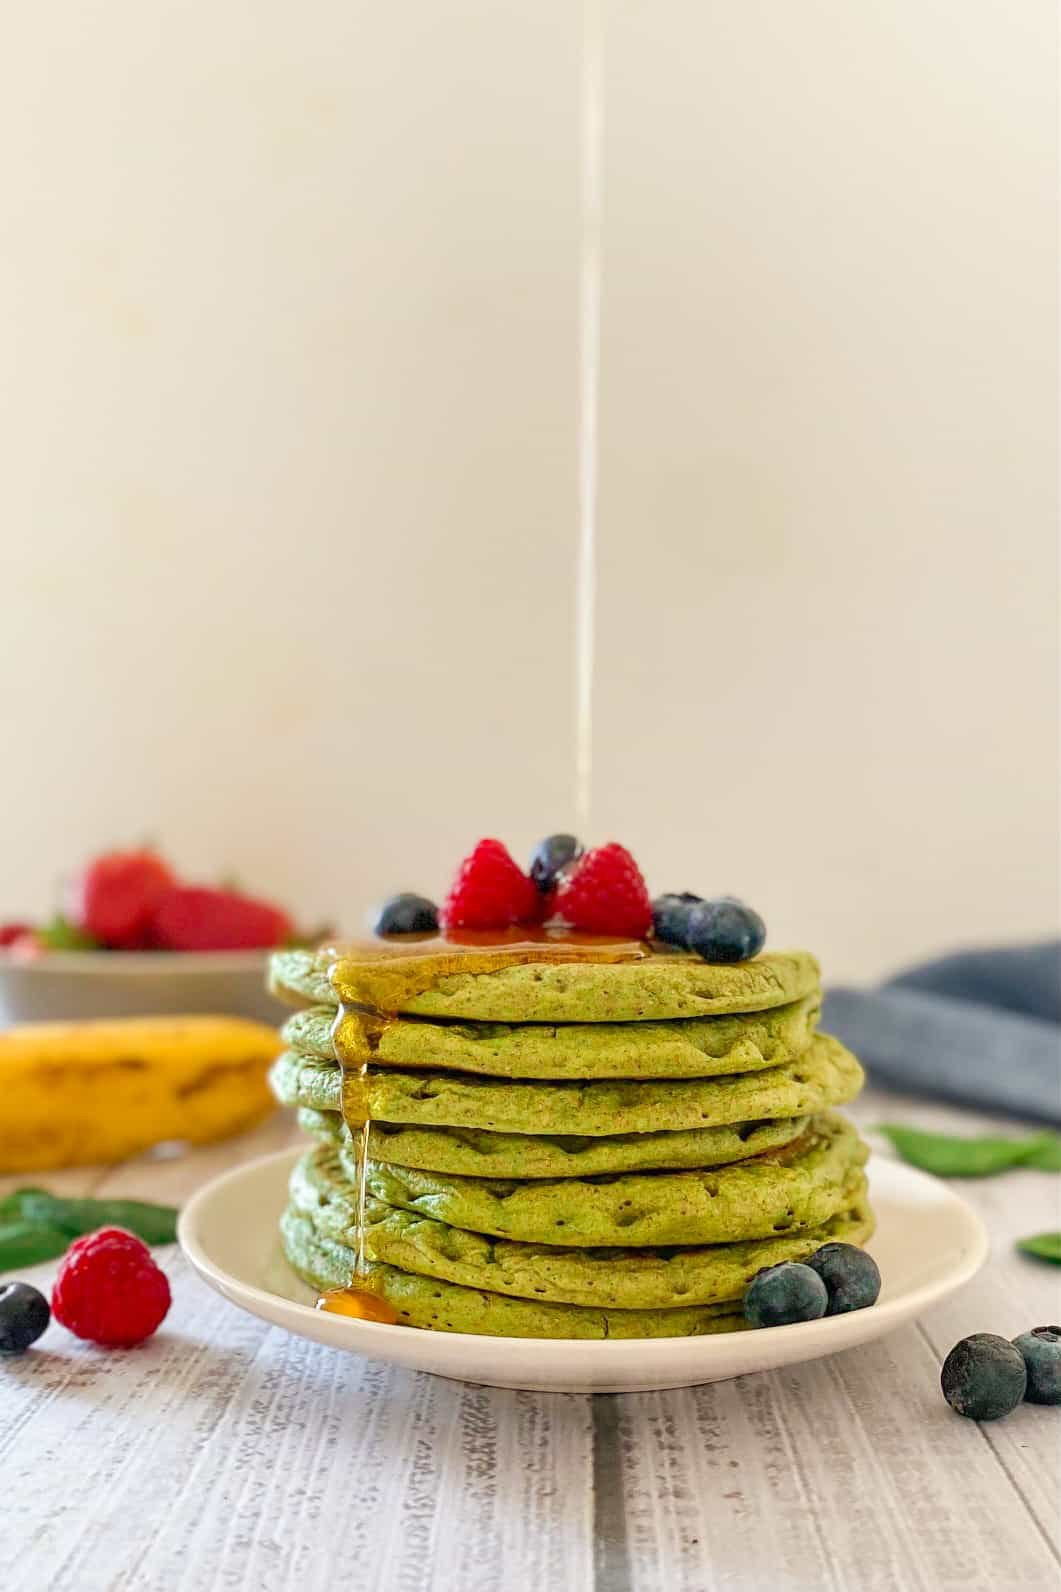 Syrup pouring over stack of green pancakes.